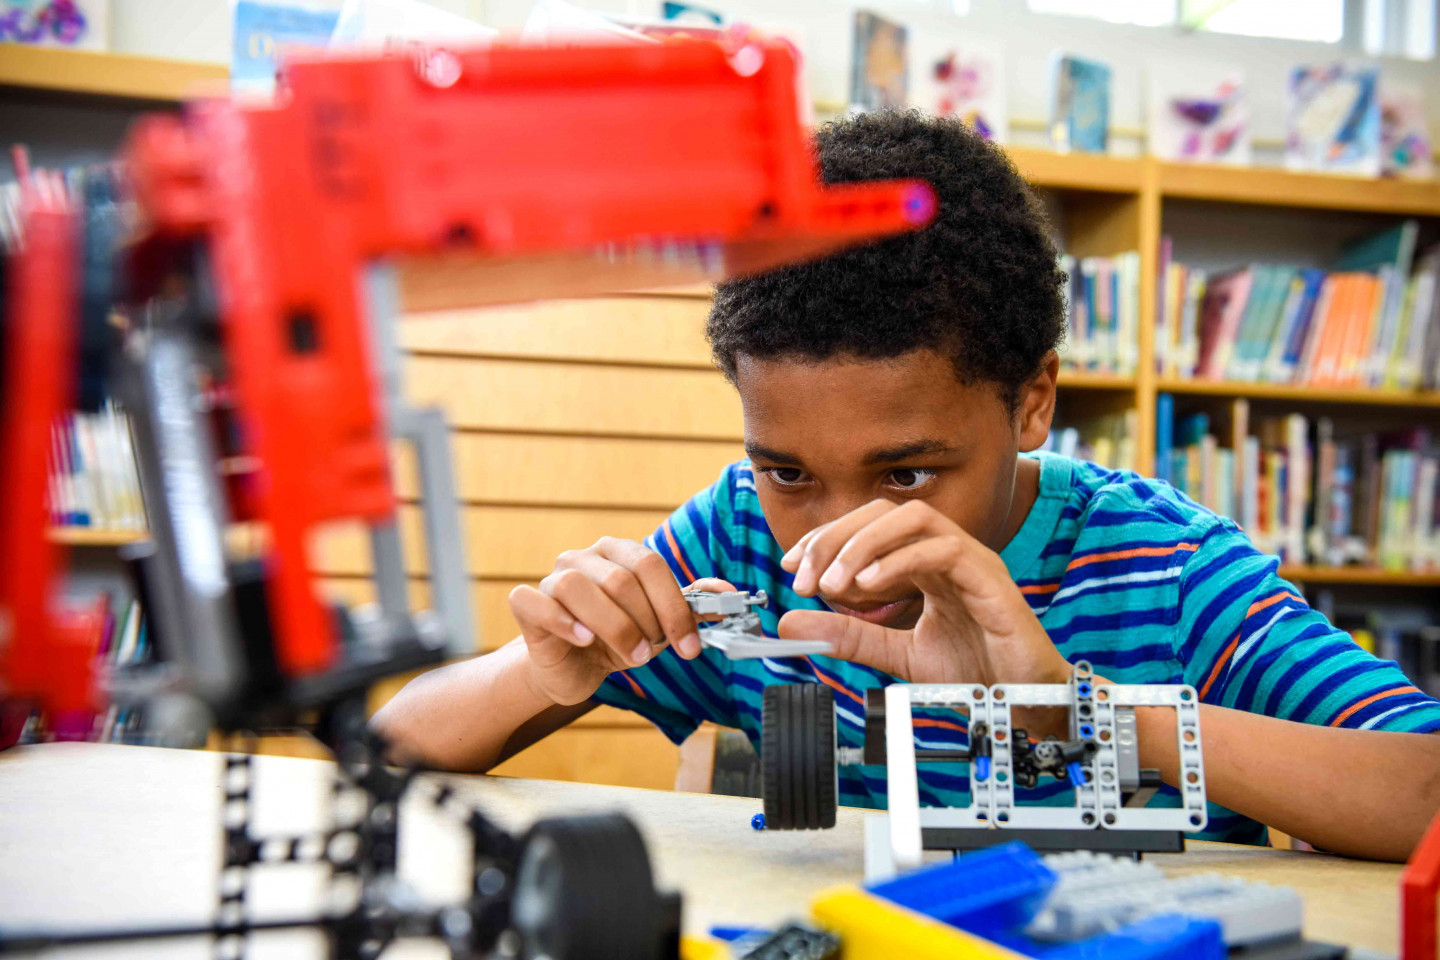 A child works on an engineering project in a classroom.